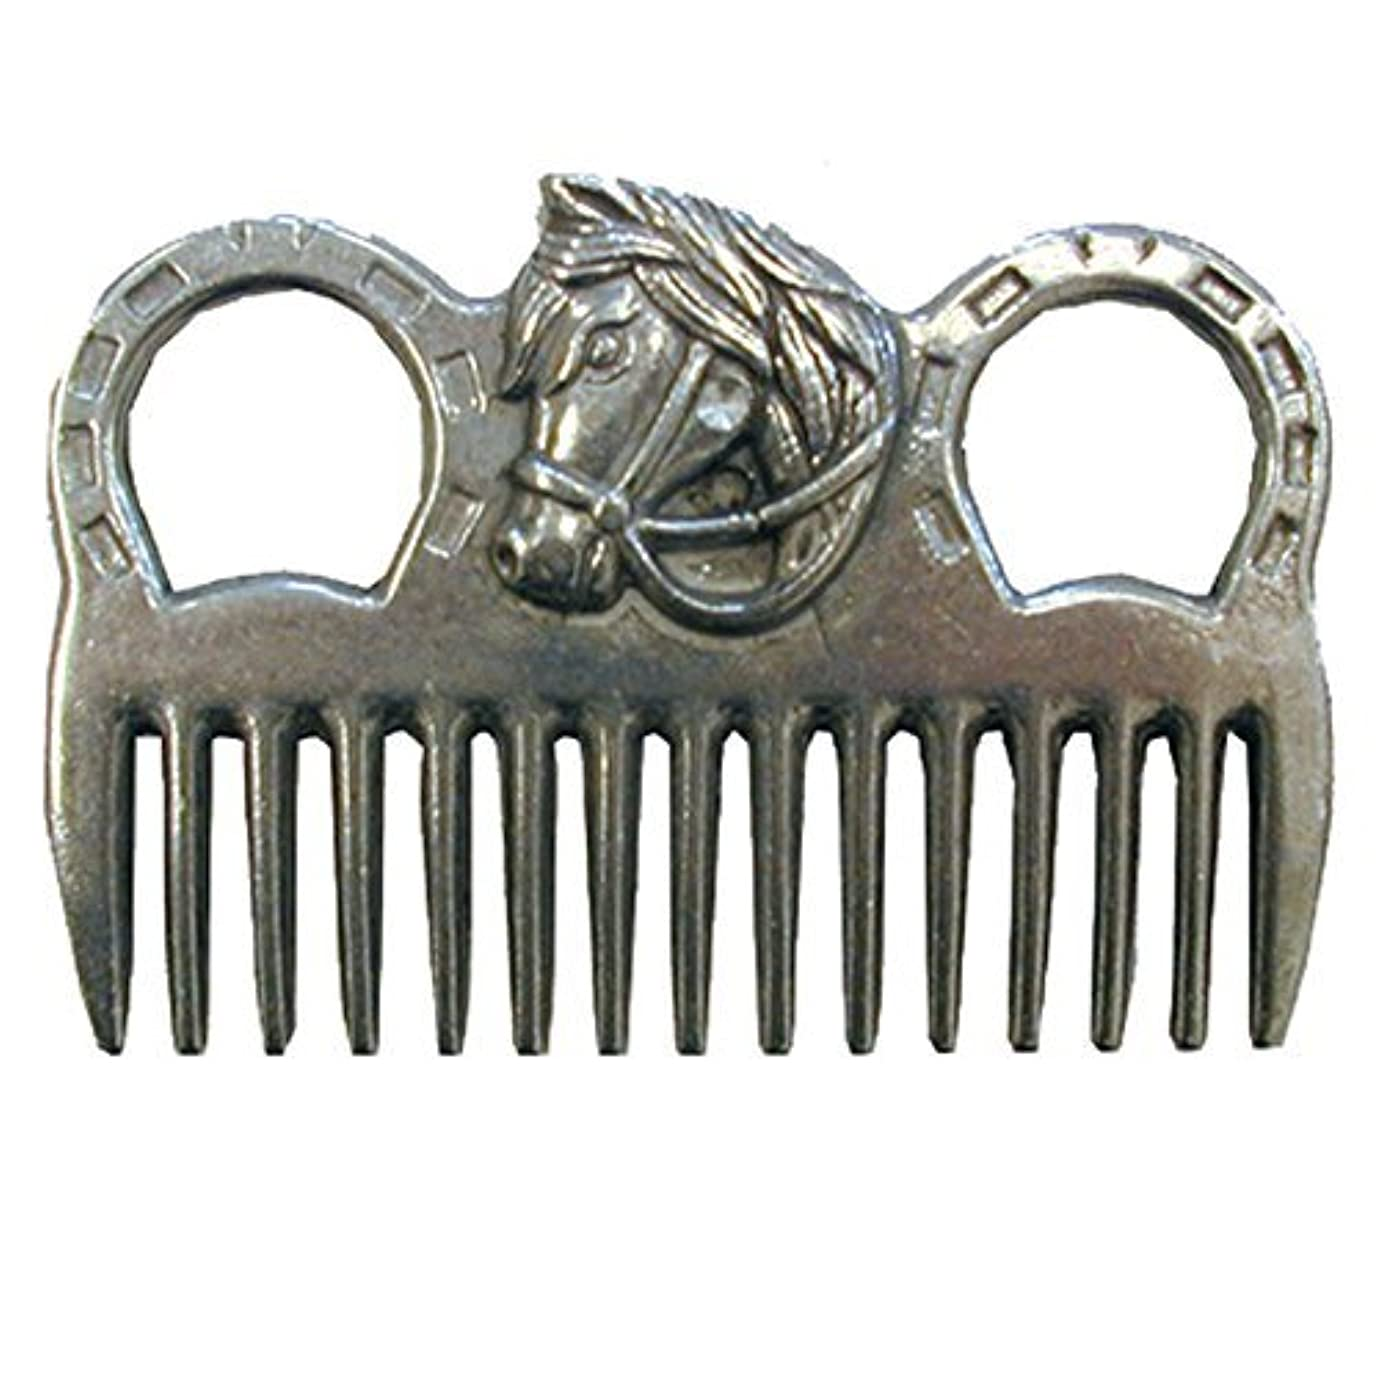 惨めな望ましいラフトIntrepid International - MANE COMB ALUMINUM W/HORSEHEAD [並行輸入品]